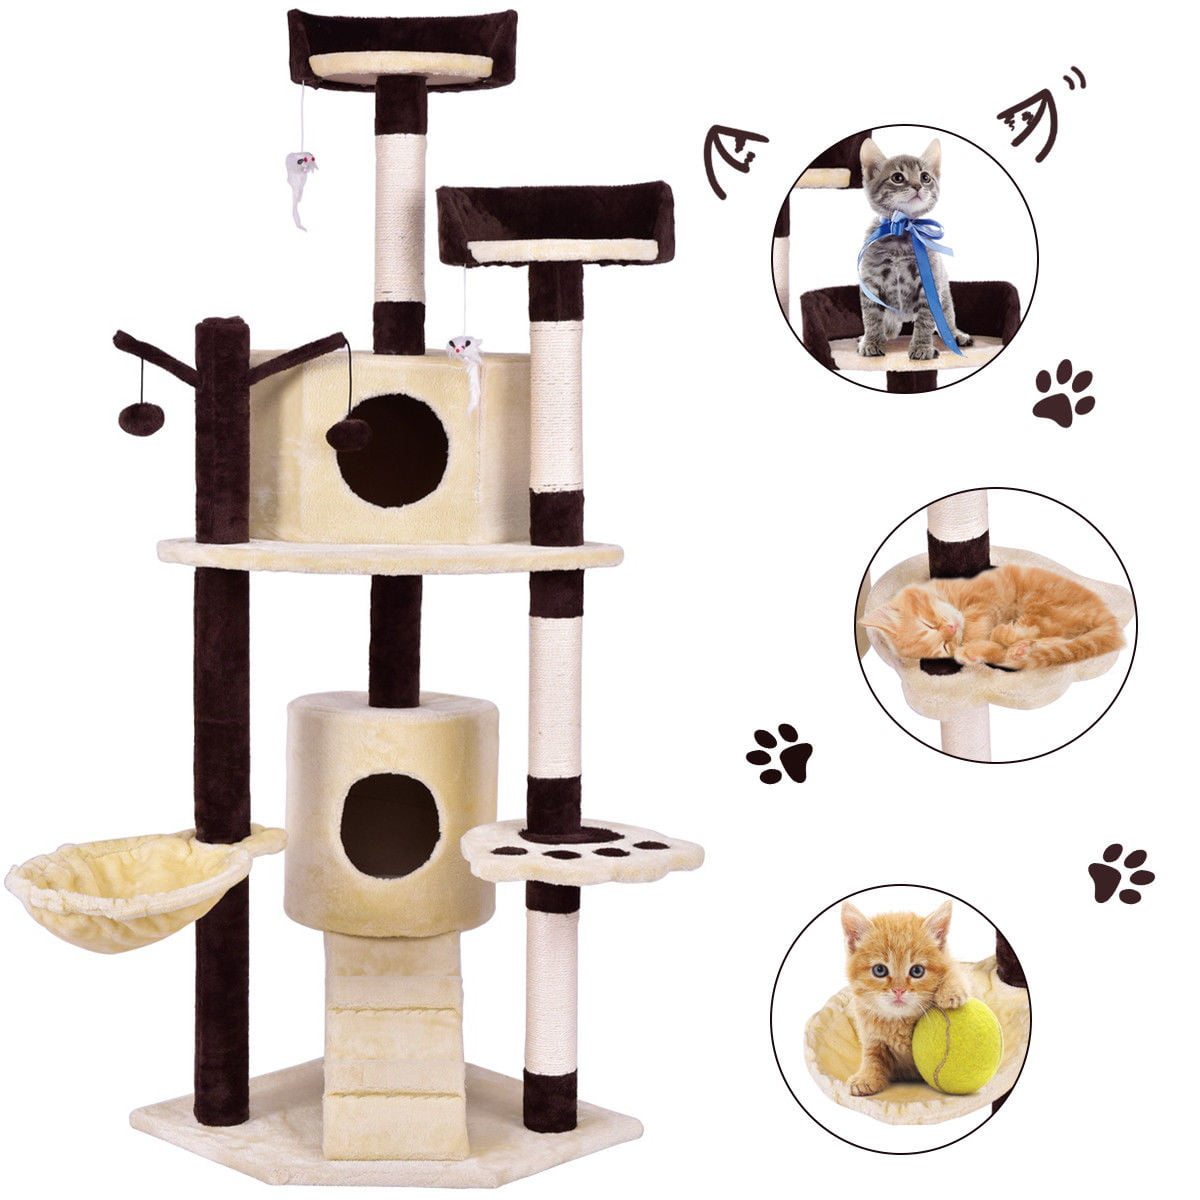 Gymax 63'' Cat Tree Pet Play House Tower Condo Bed Scratching Post w Hanging Toy Ladder by Gymax